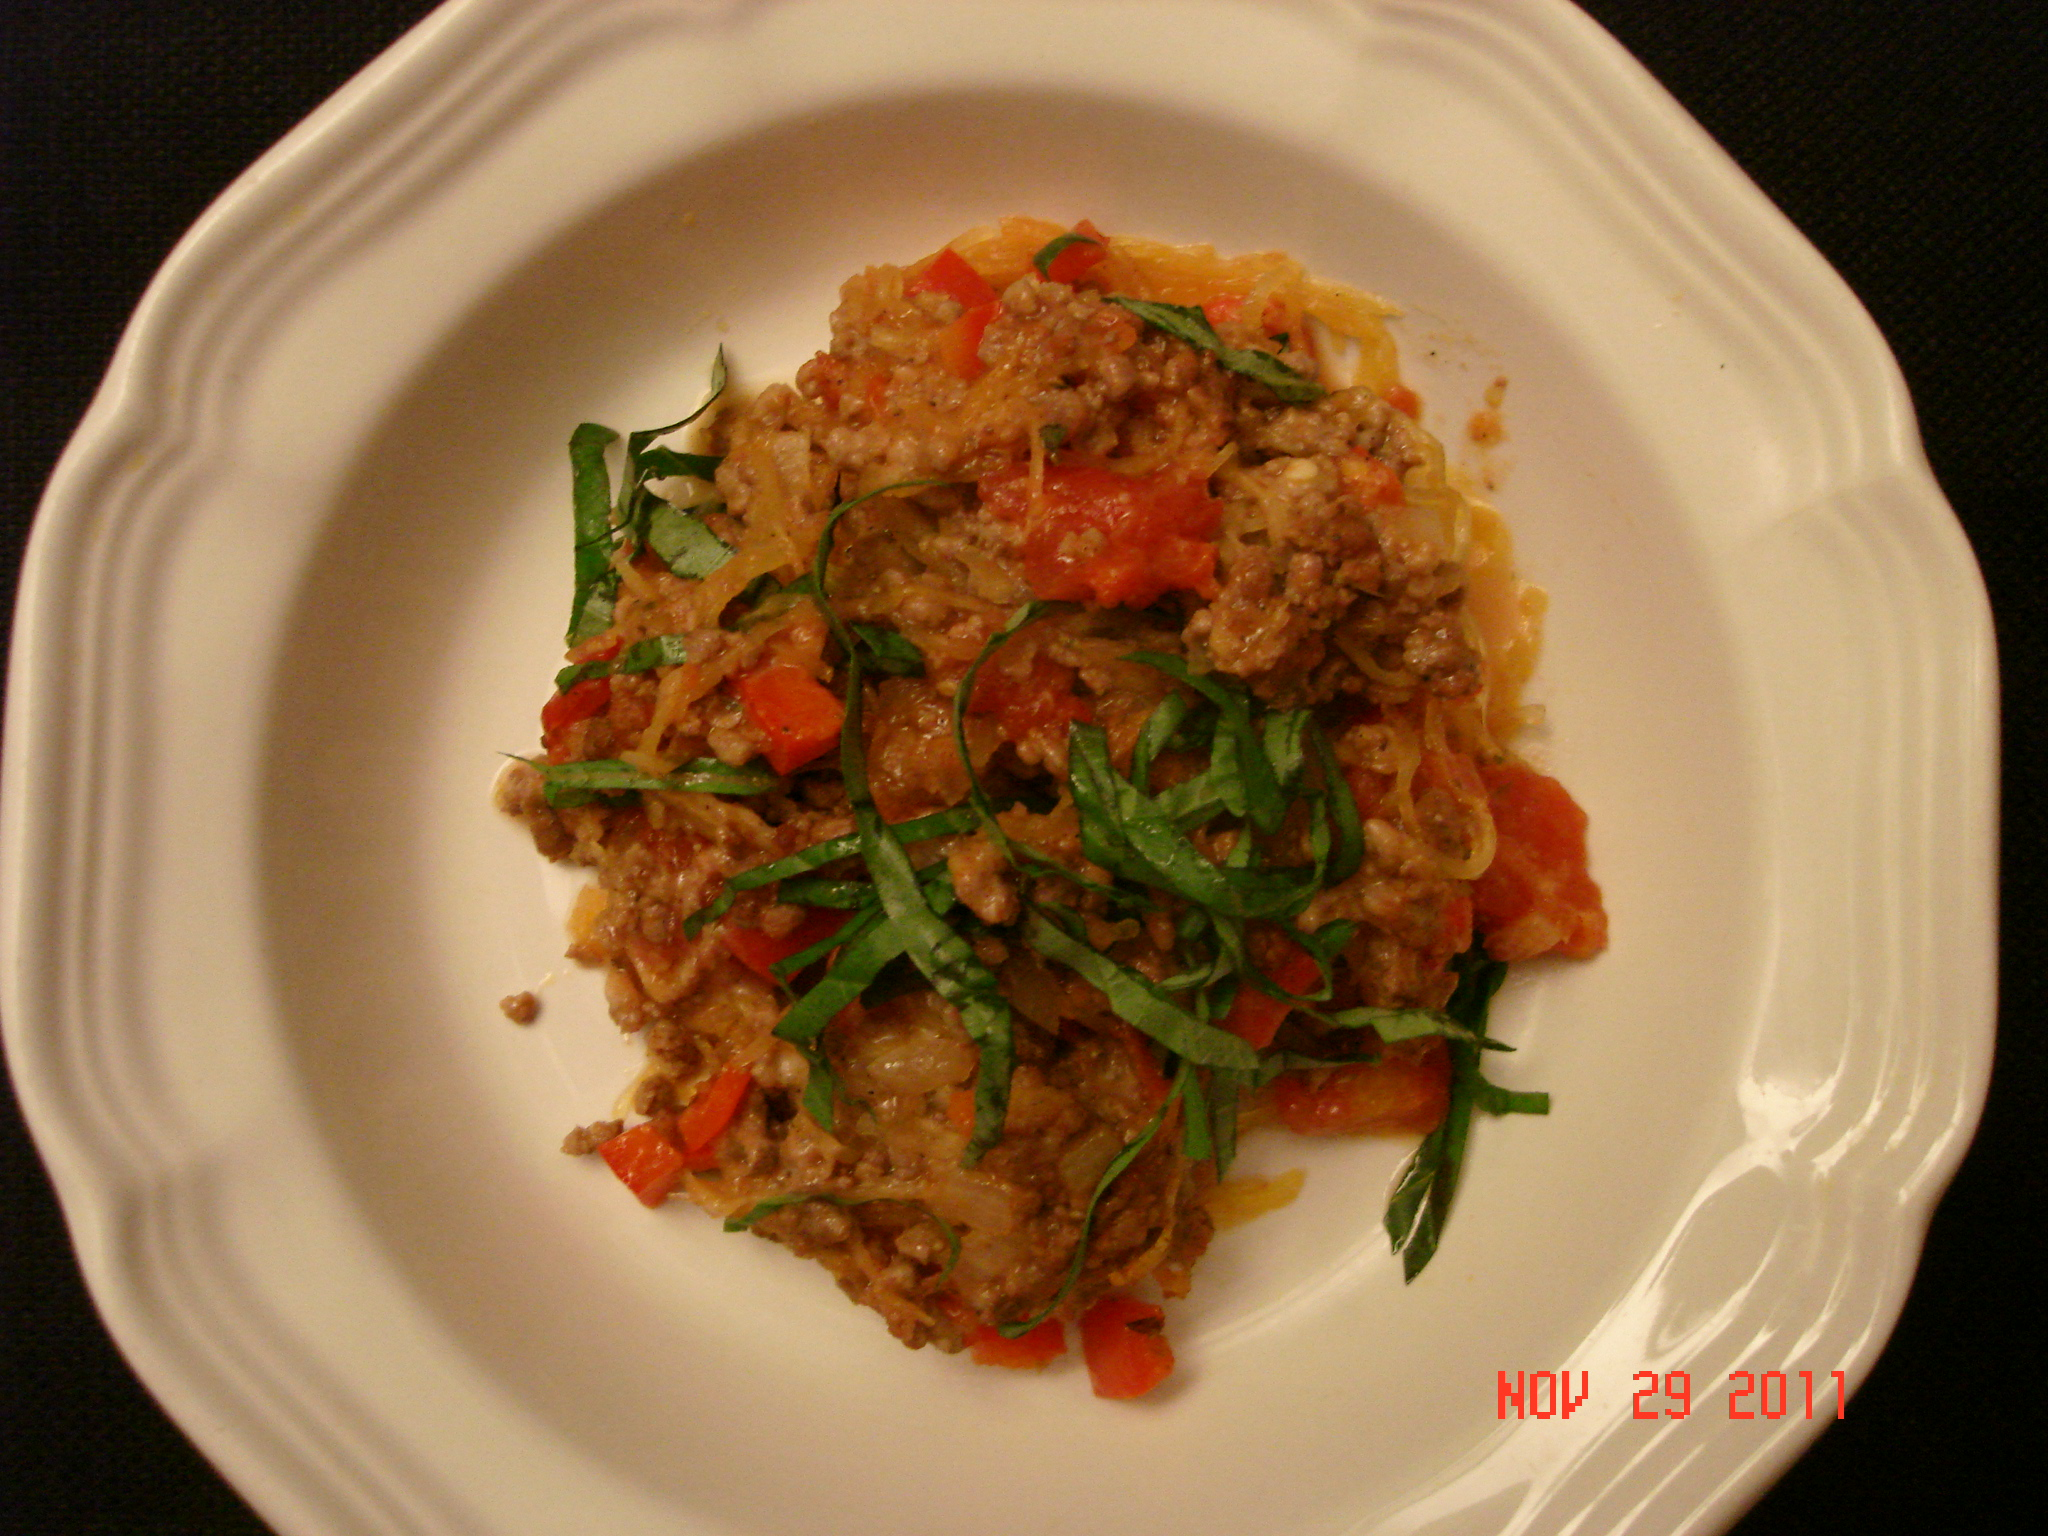 Spaghetti Squash with Ground Meat and Peppers